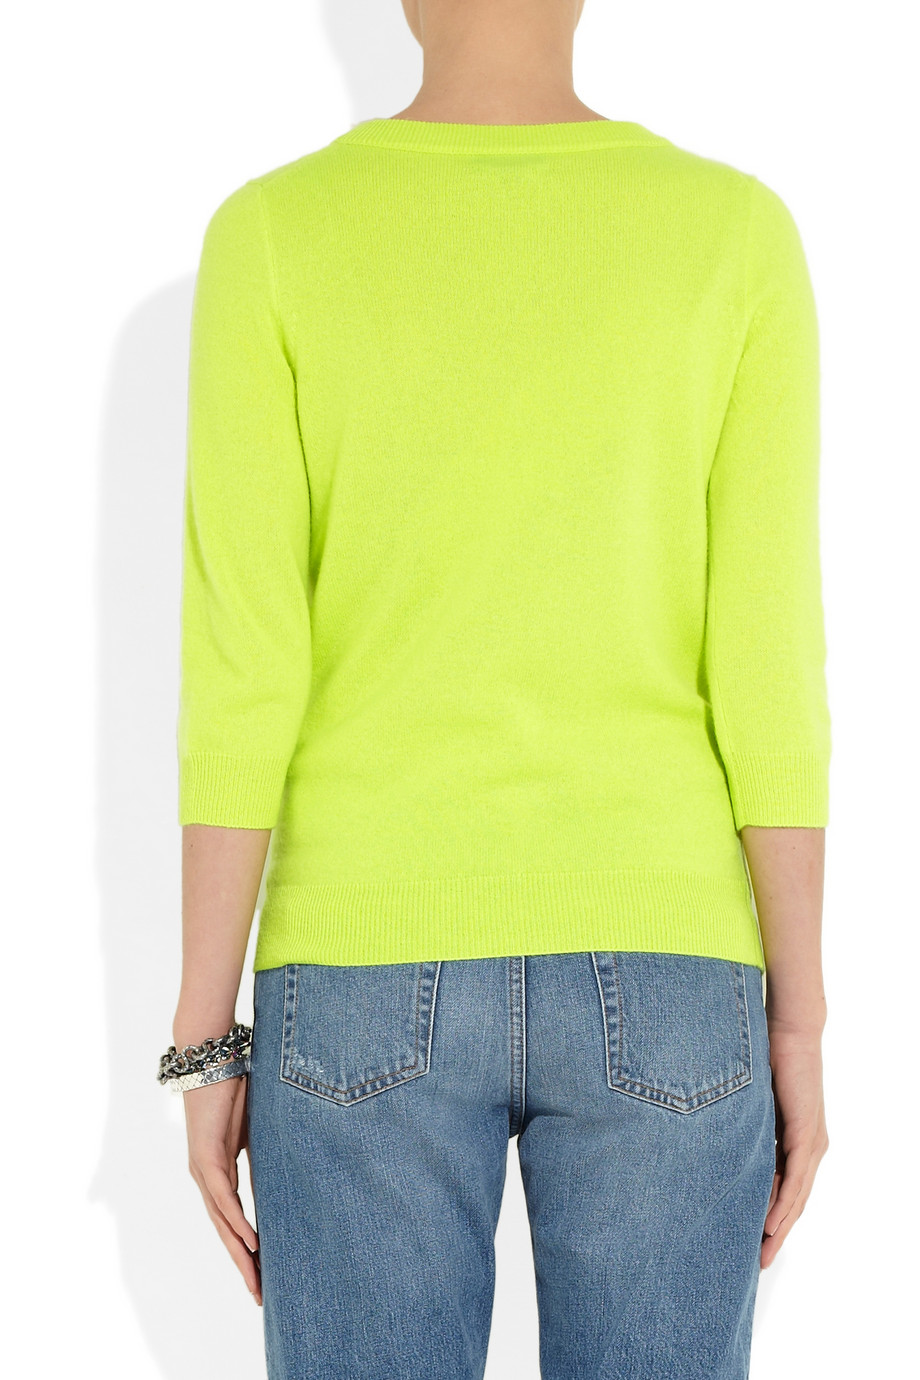 Lime Green Cashmere Sweater  Her Sweater